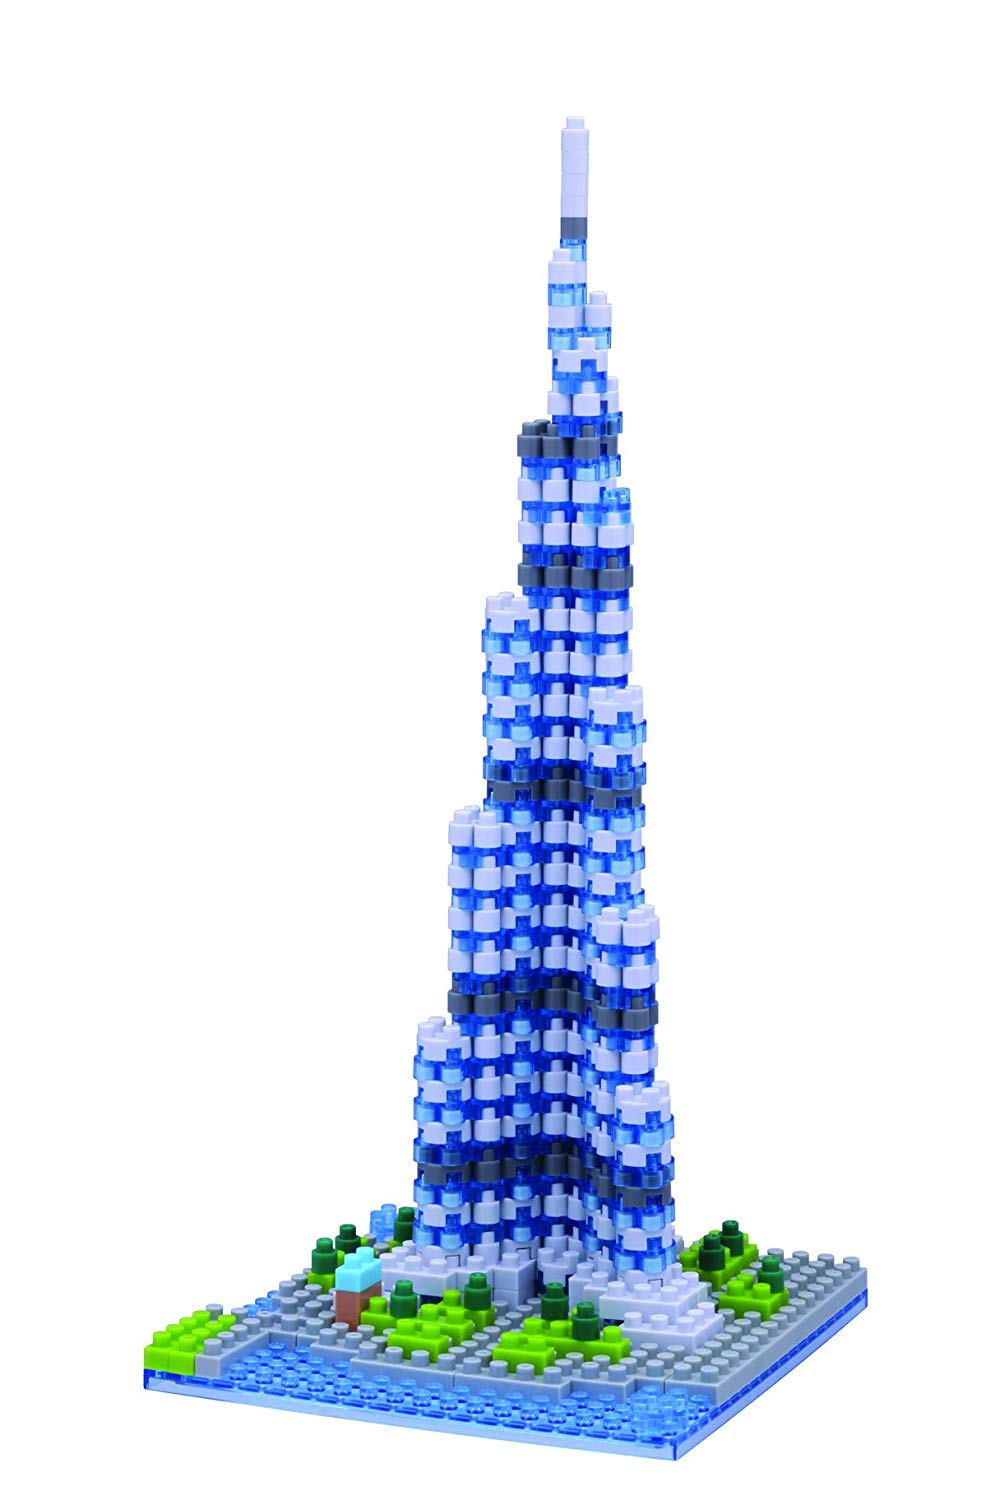 Nanoblock, Sight to See, Architecture, Burj Khalifa